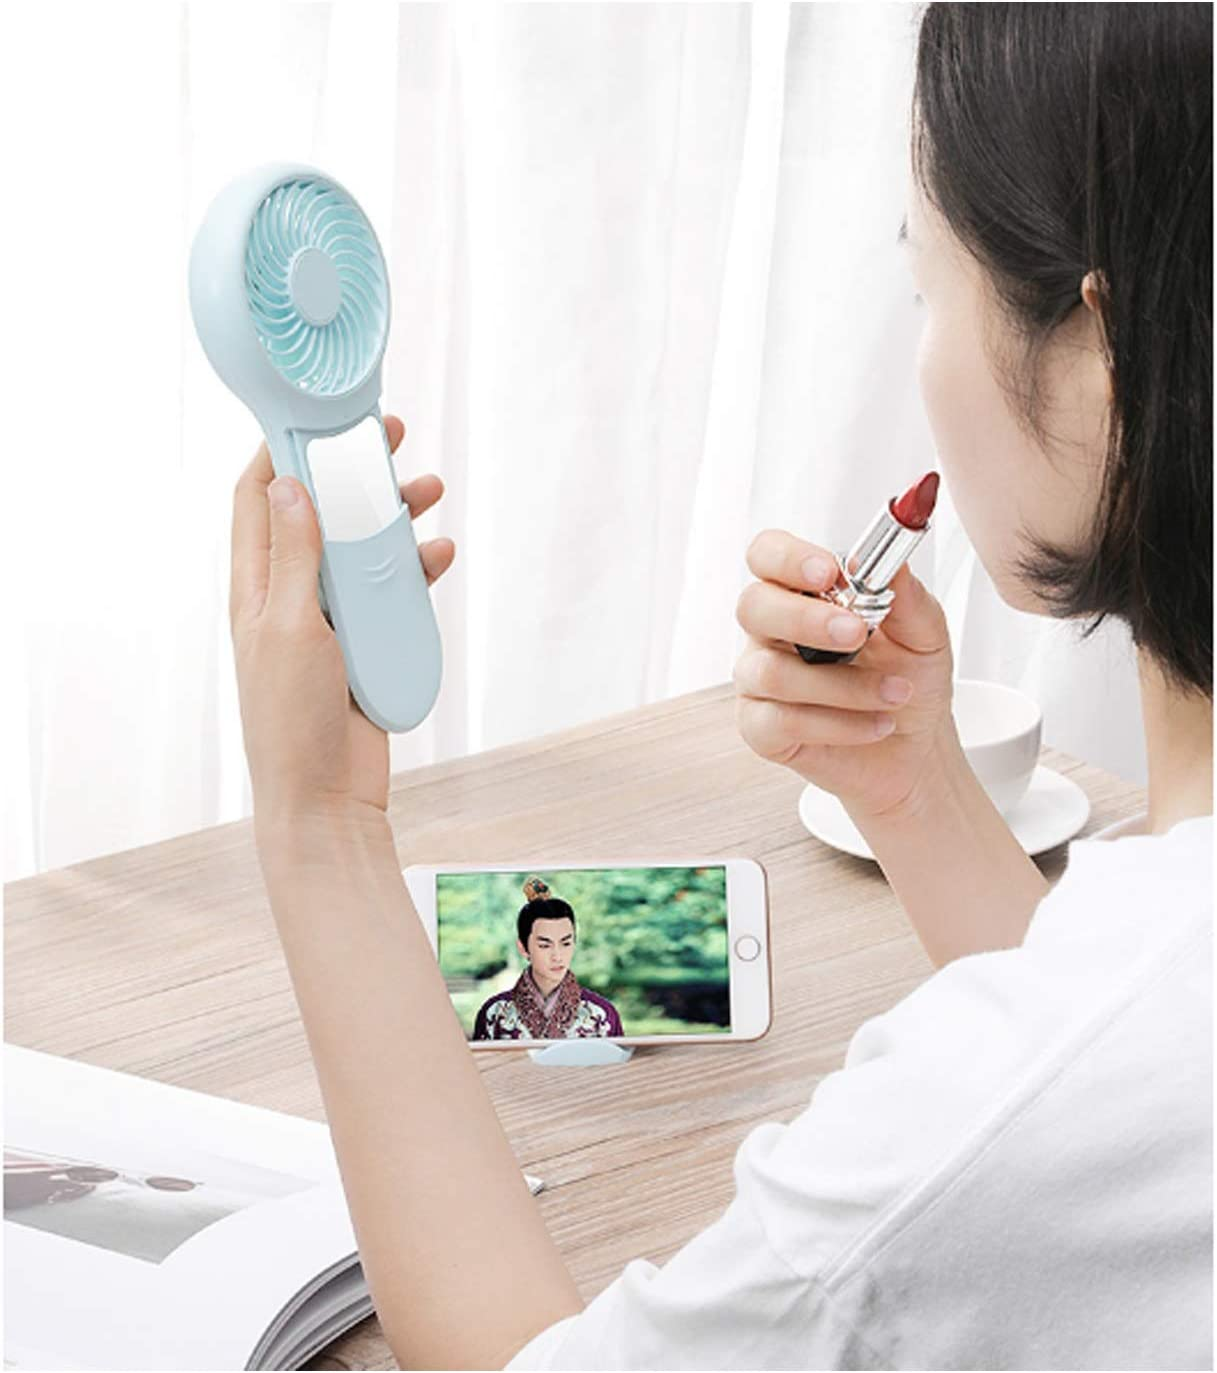 Air Cooling Fan Personal Electric Fan Portable USB Makeup Mirror Cellphone Stand Holder for Home//Office//Travel//Outdoor Color : Green